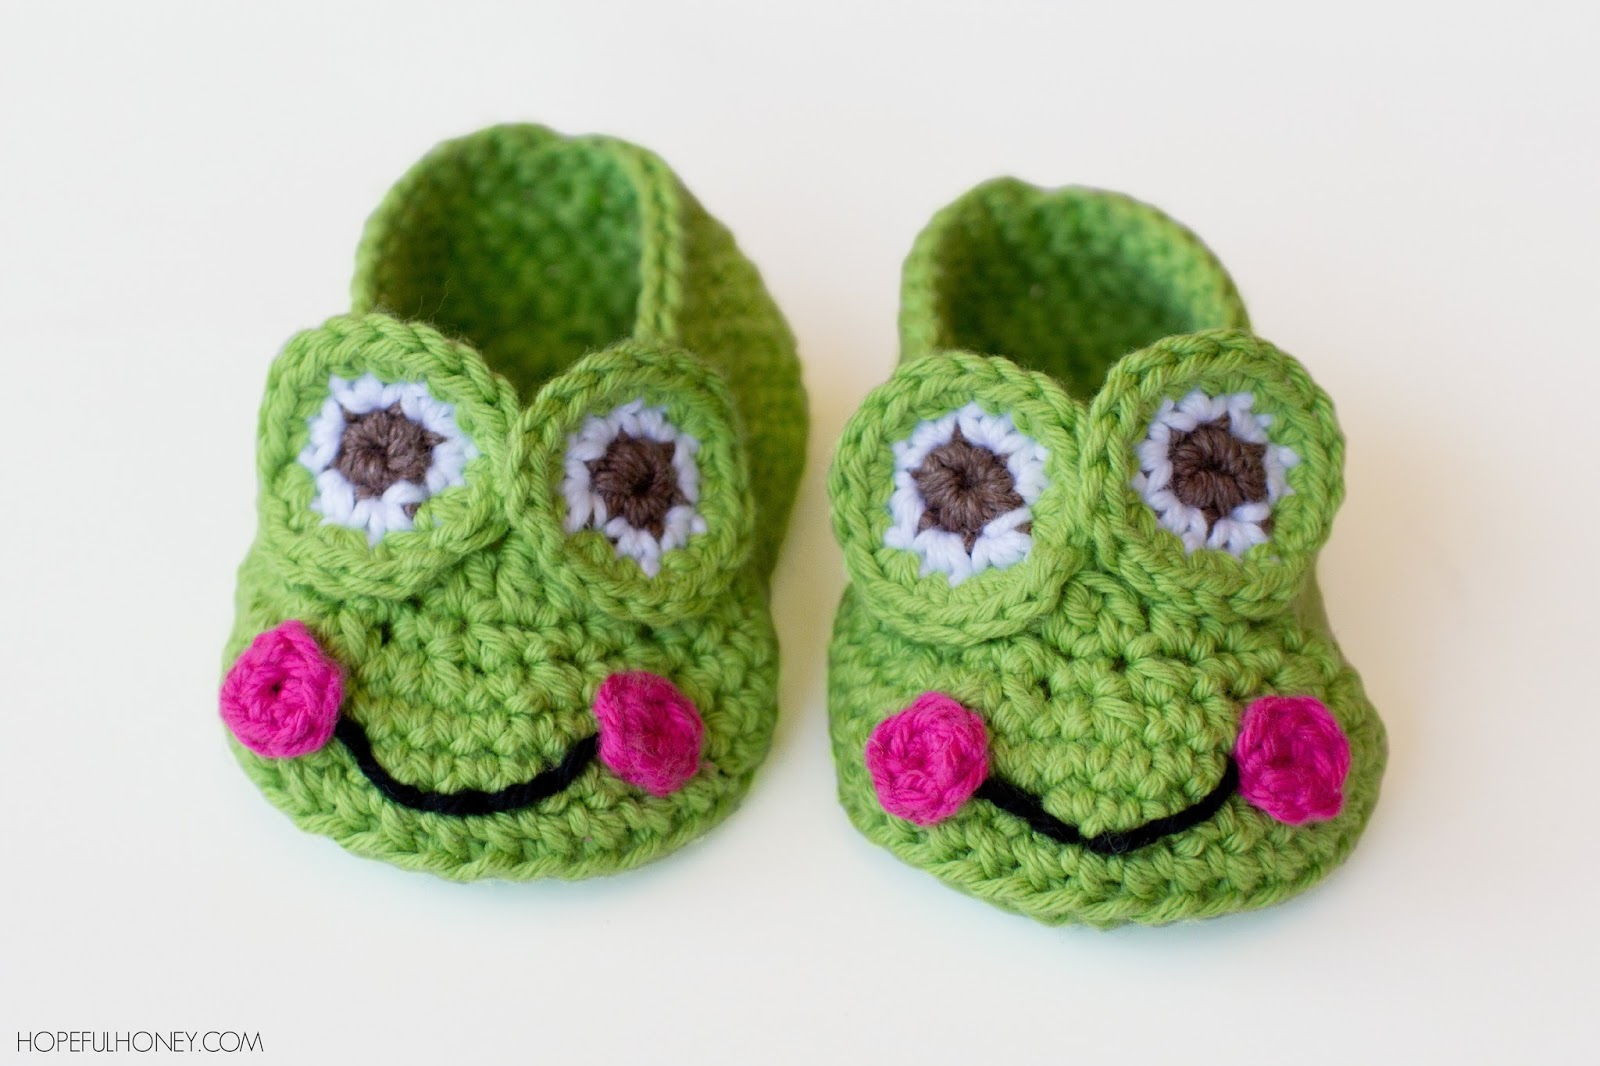 Free Crochet Patterns for Baby Booties Inspirational 40 Adorable and Free Crochet Baby Booties Patterns Of Luxury 40 Pictures Free Crochet Patterns for Baby Booties